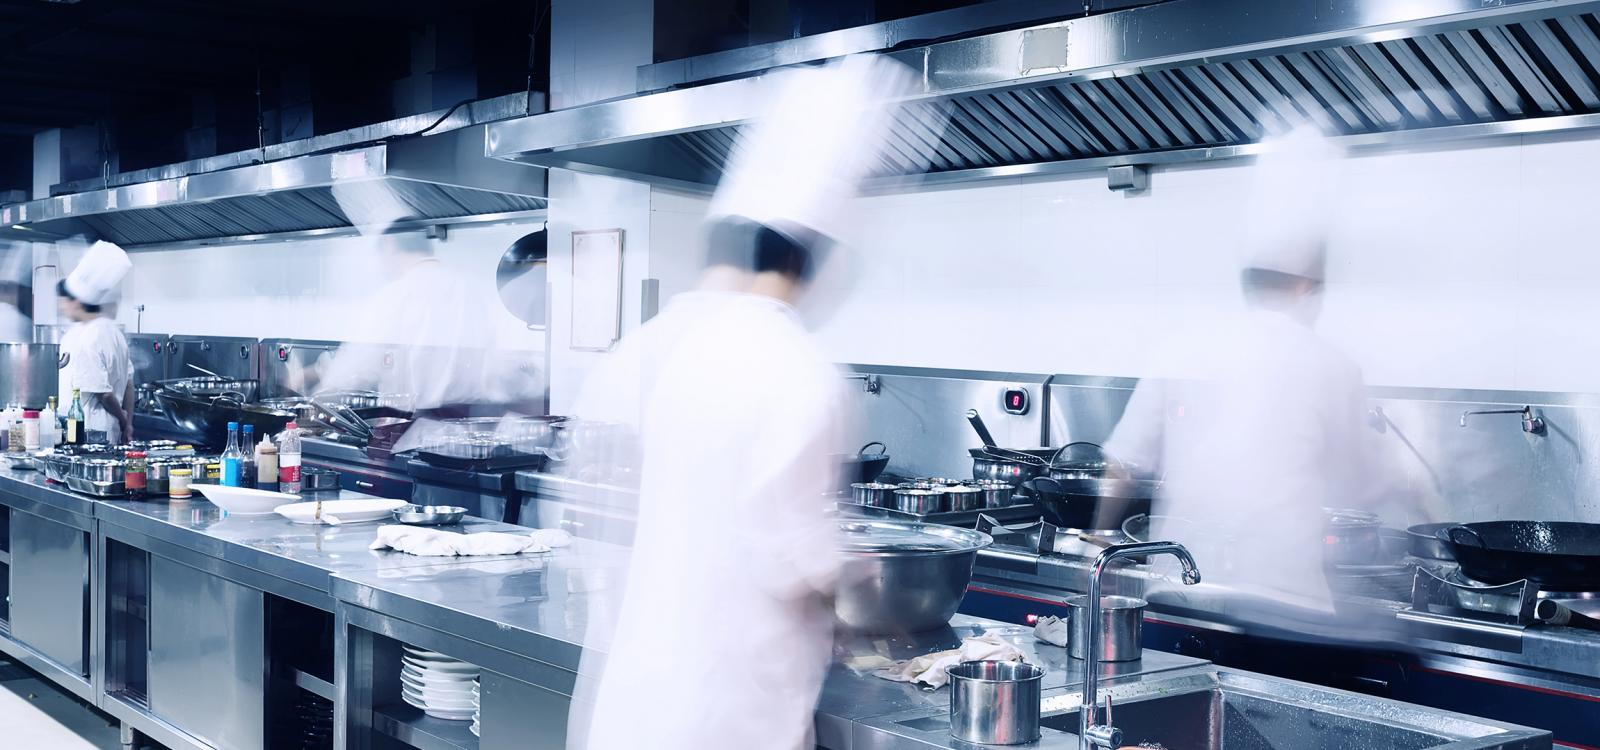 Commercial Kitchen Extraction Systems Extractor Canopy